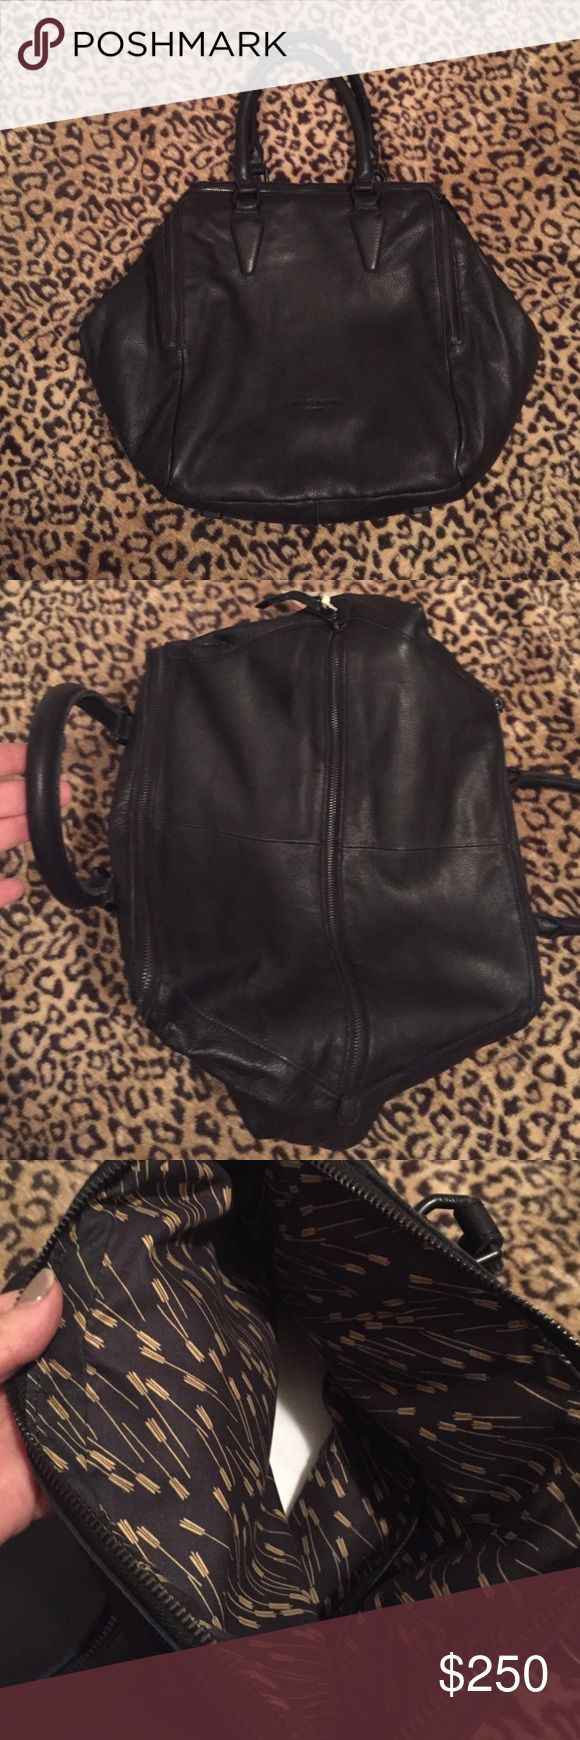 "New Liebeskind Berlin Kayla E vintage bag - Black Brand new with tags.                                                Double top handles, 6.7"" drop Two outside zip compartments Center compartment Three inside pockets Fully lined Includes dust bag 12.6""W X 19.7""H X 7.5""D Leather Liebeskind Bags Satchels"